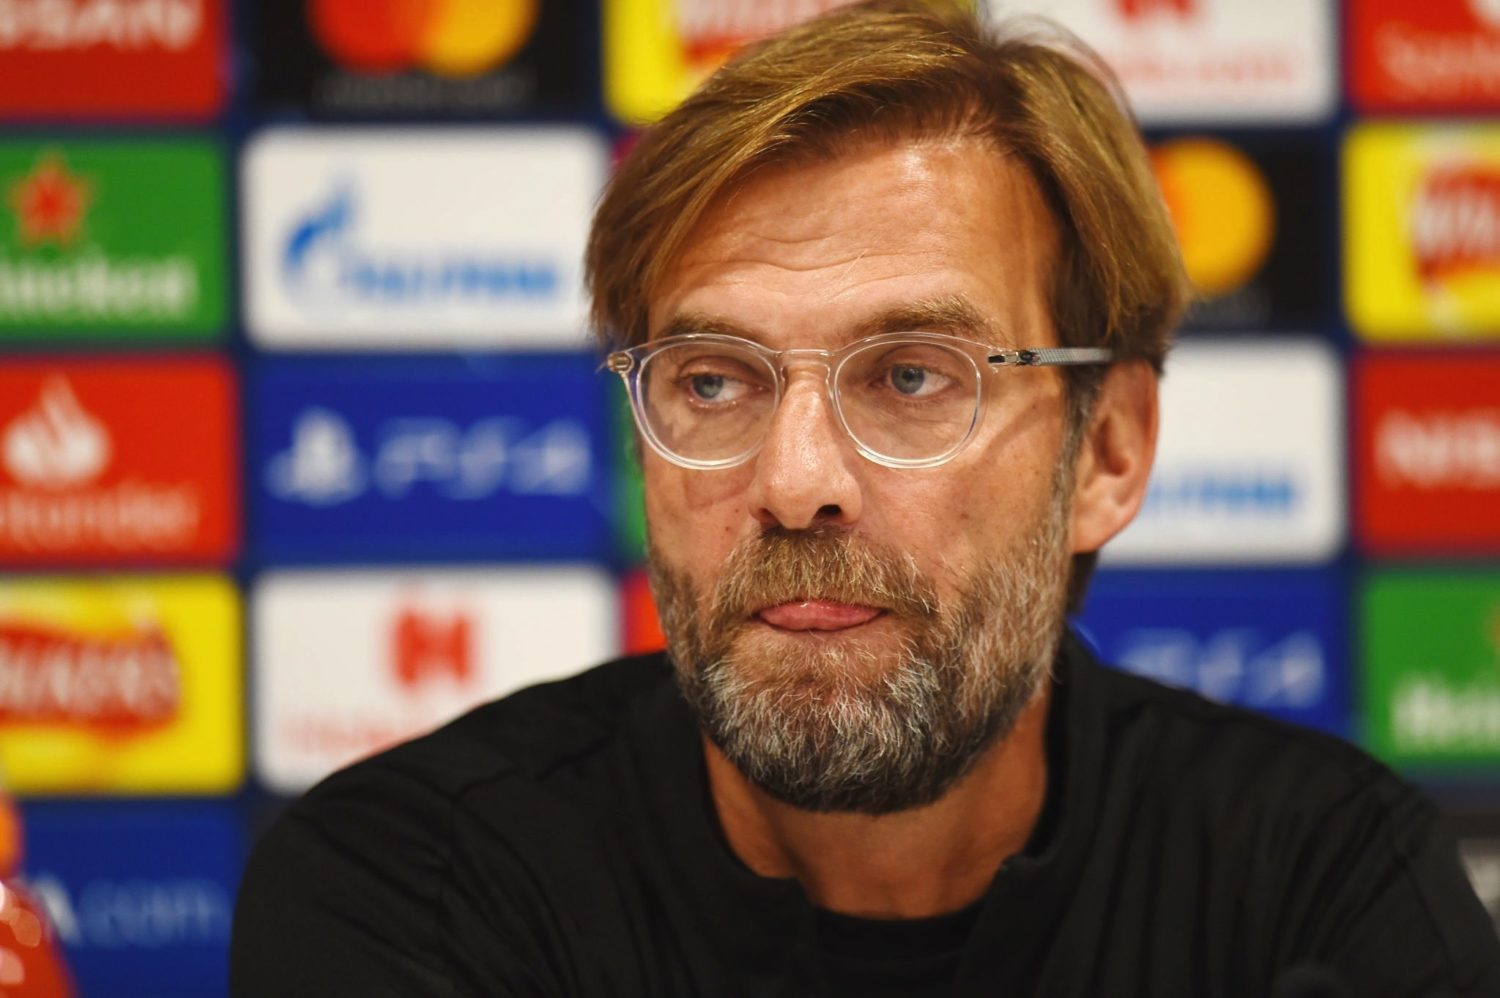 Klopp: Liverpool players will need to be brave against PSG stars